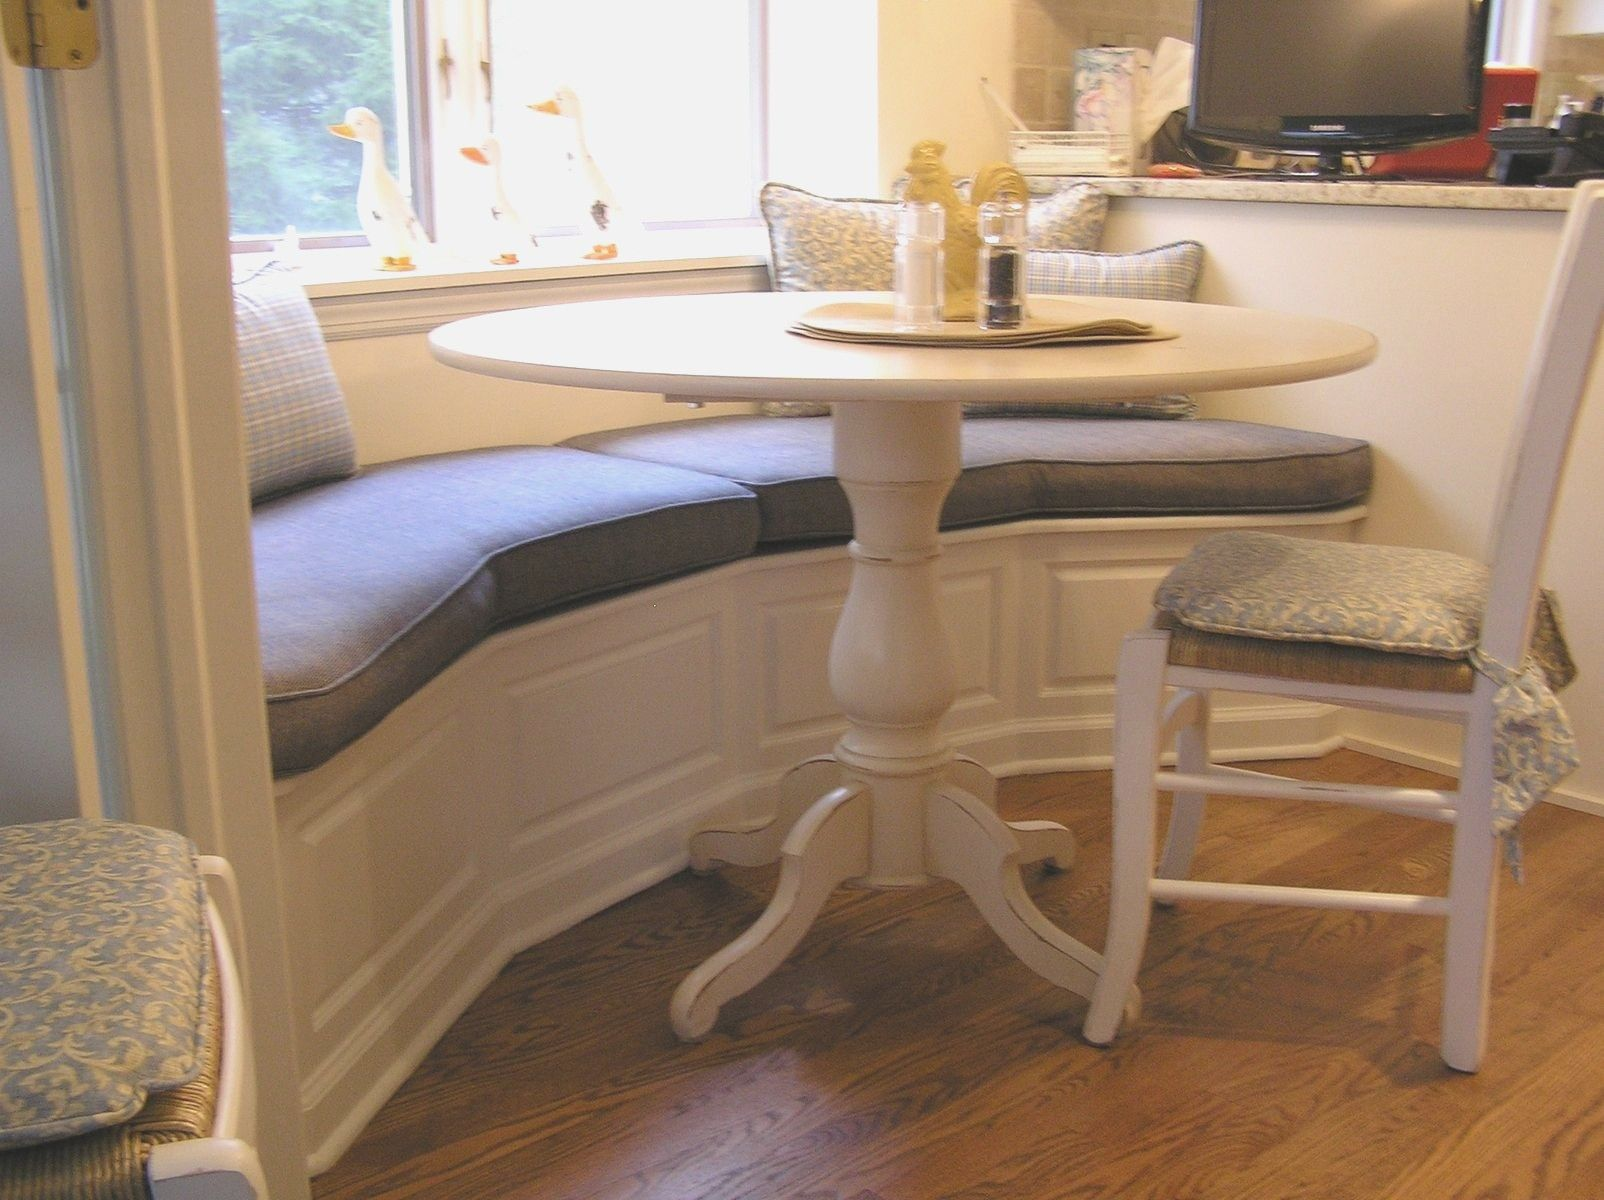 Kitchen Tables With Bench Seating Cheap Kitchen Tables With Bench Seating Kitchen Ta Bench Seating Kitchen Table Booth Dining Table Booth Seating In Kitchen